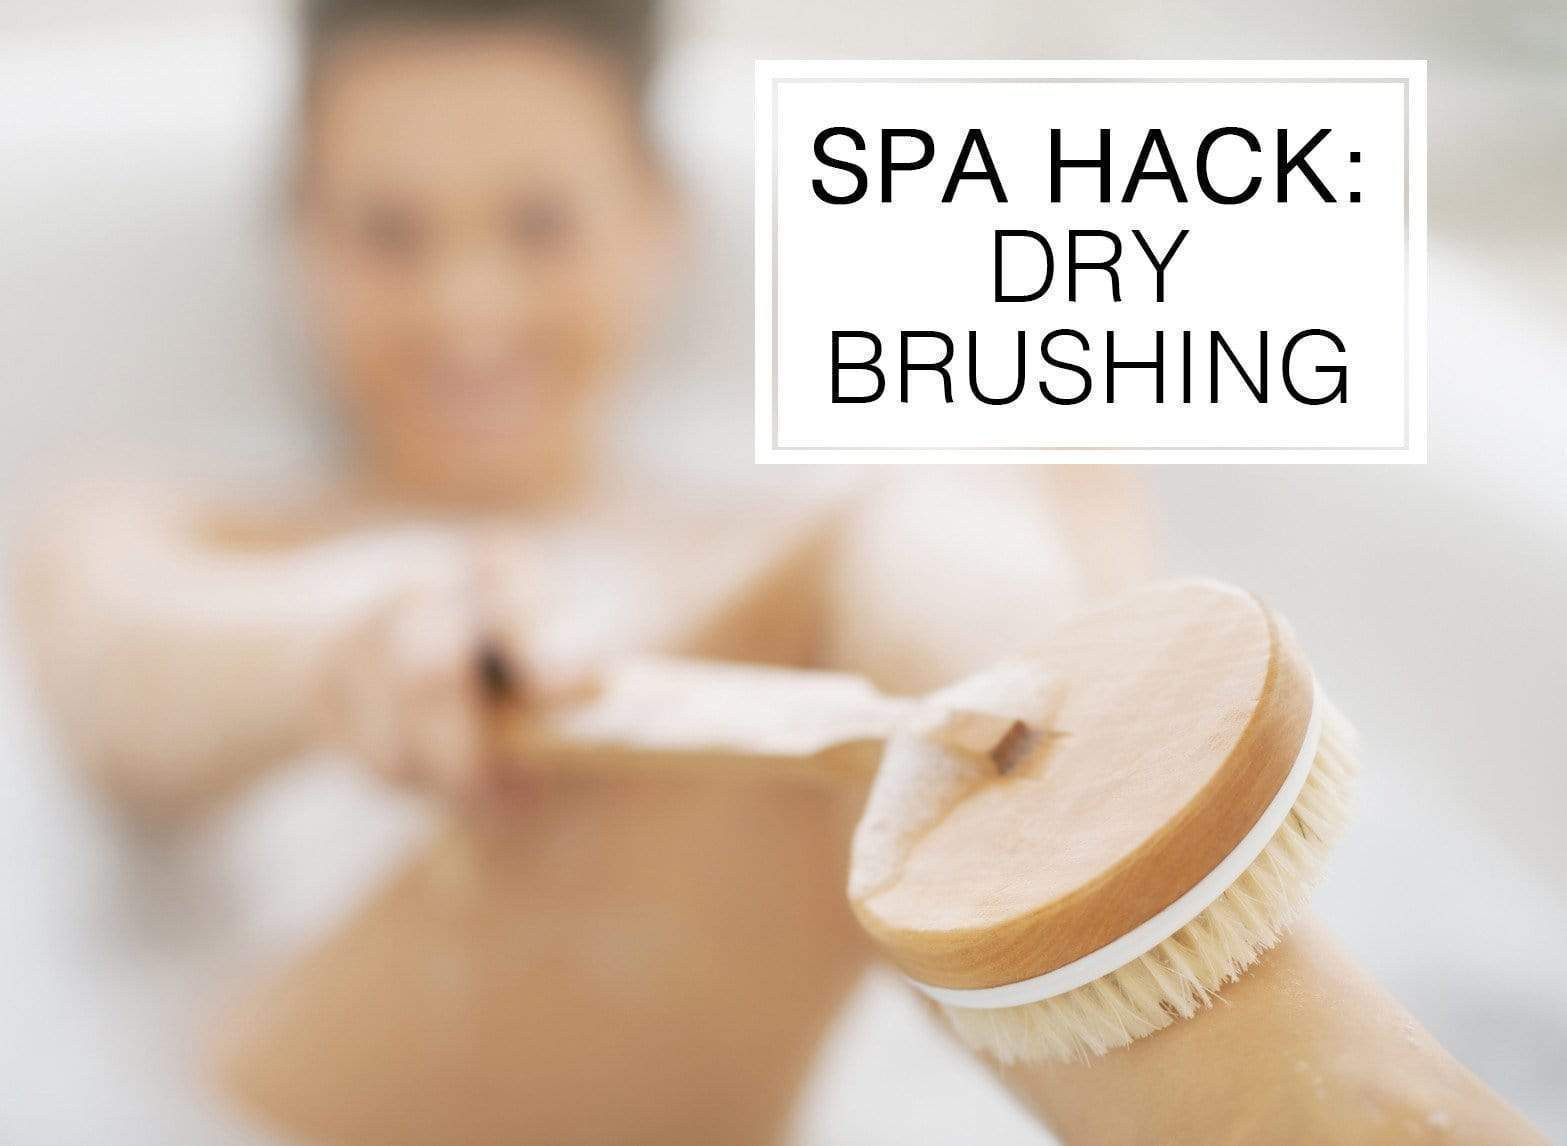 Spa Hack: Dry Brushing